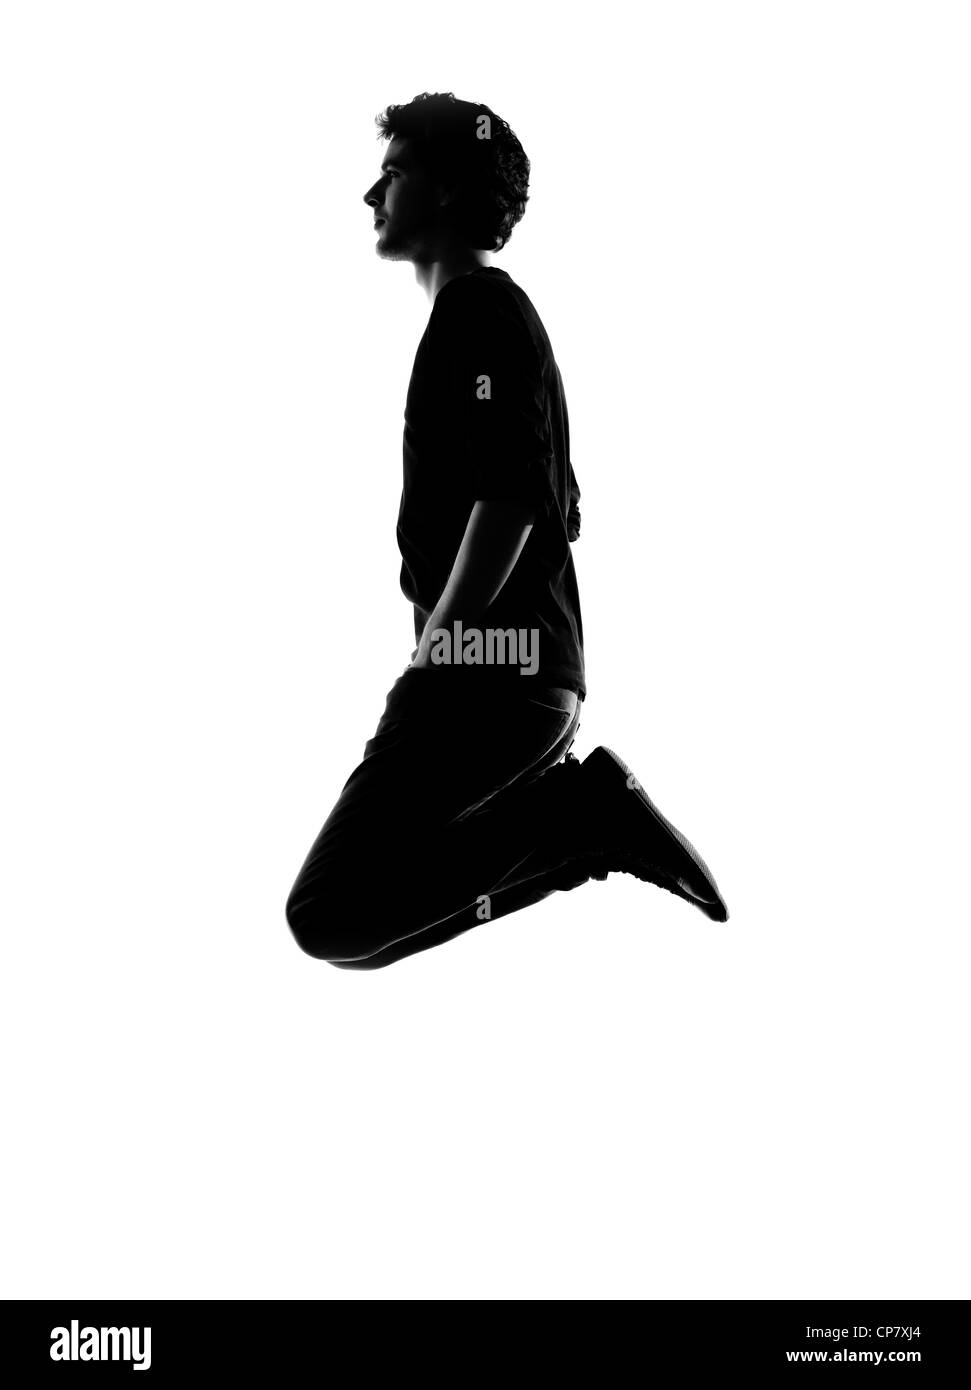 young man funny jumping silhouette in studio isolated on white background - Stock Image